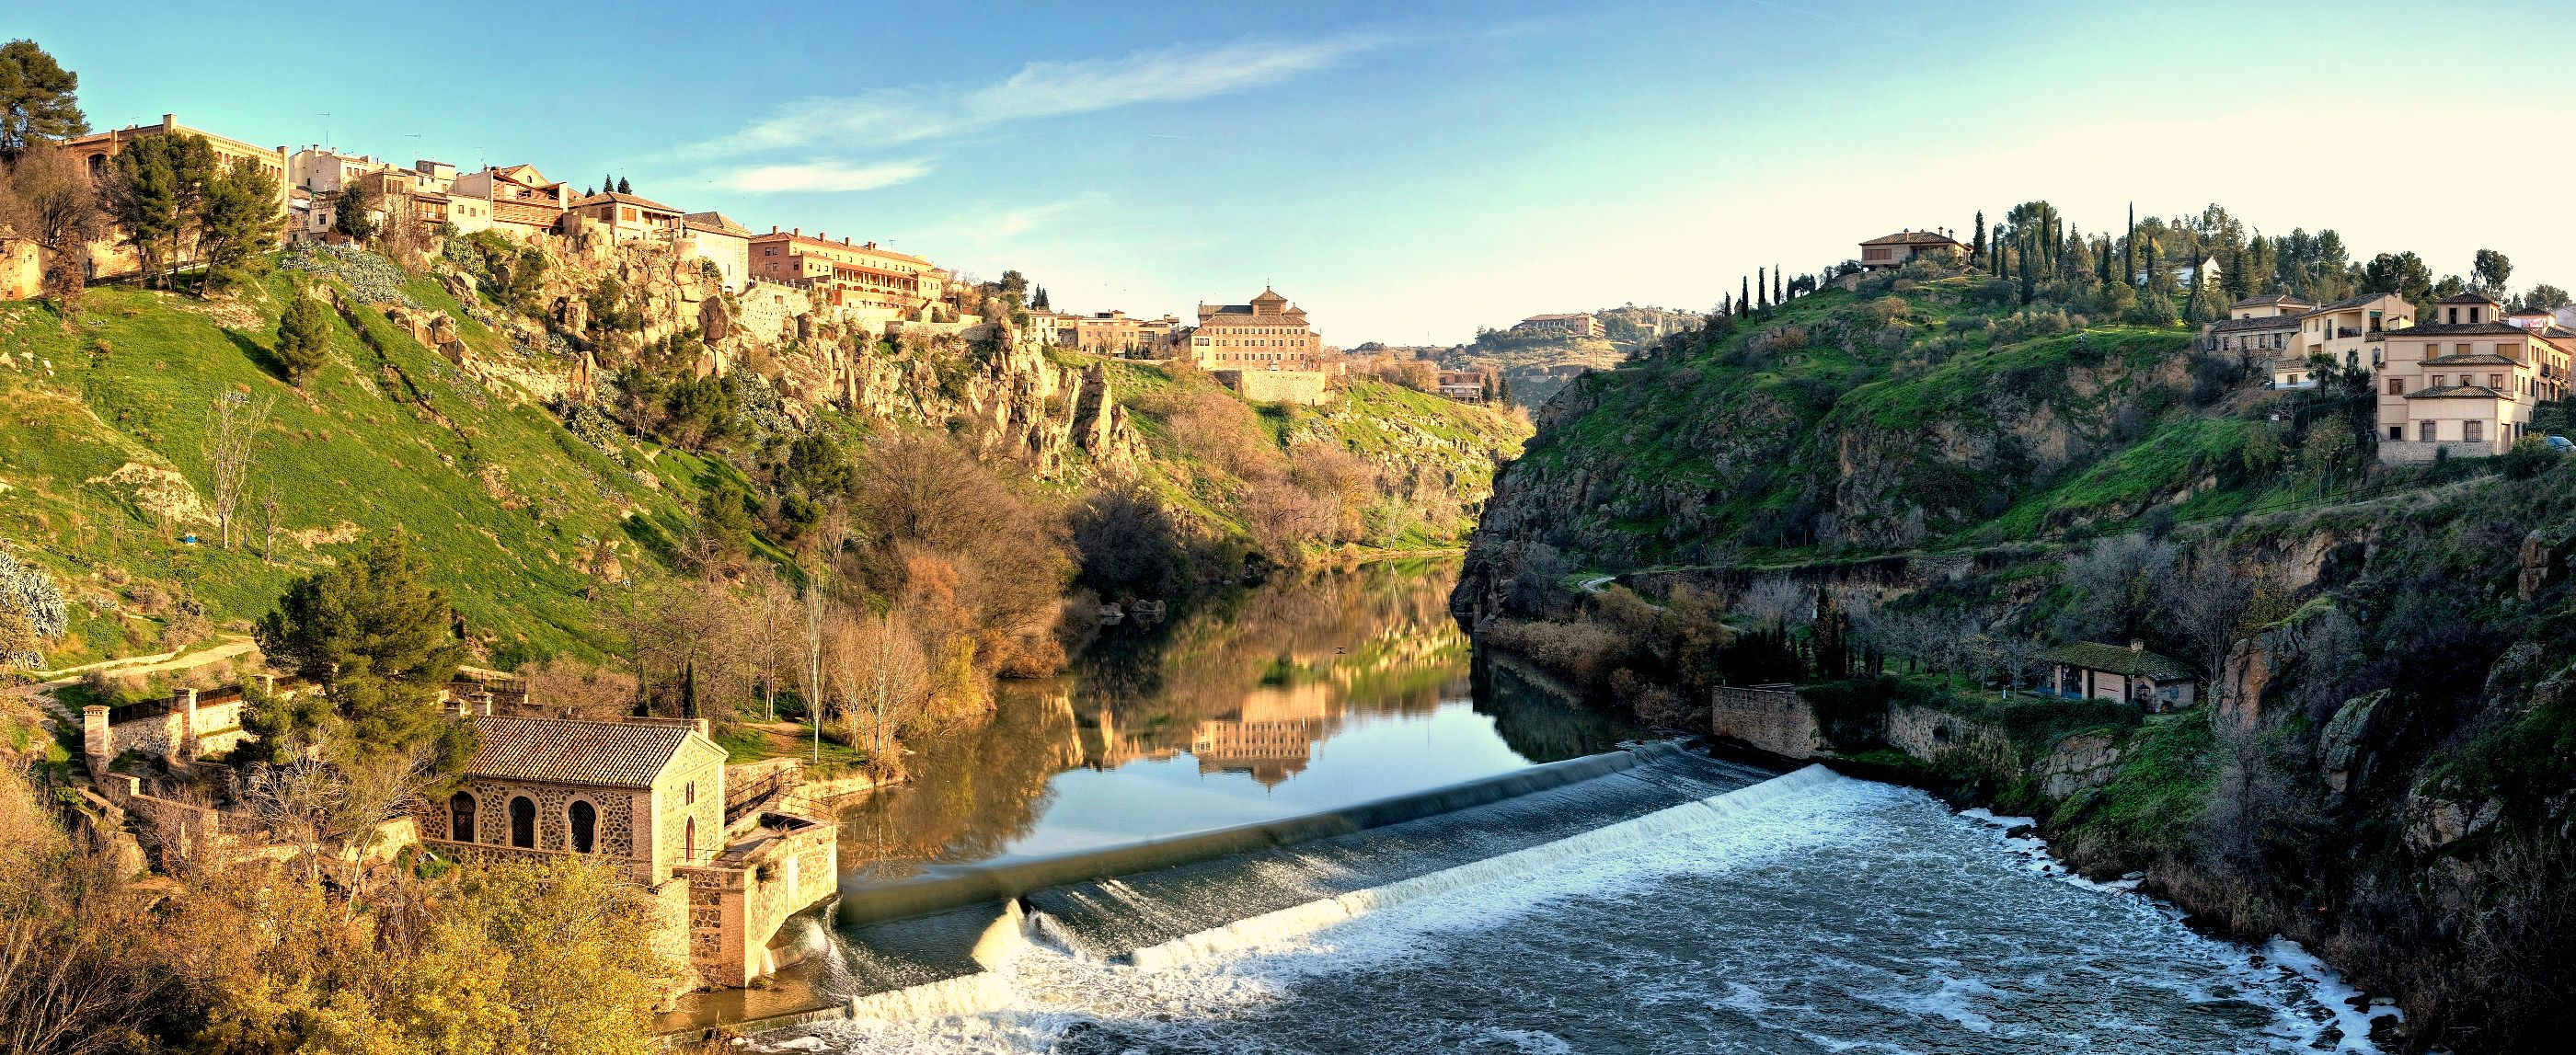 http://robertg69.files.wordpress.com/2008/03/tagus_river_panorama_-_toledo_spain_-_dec_2006.jpg